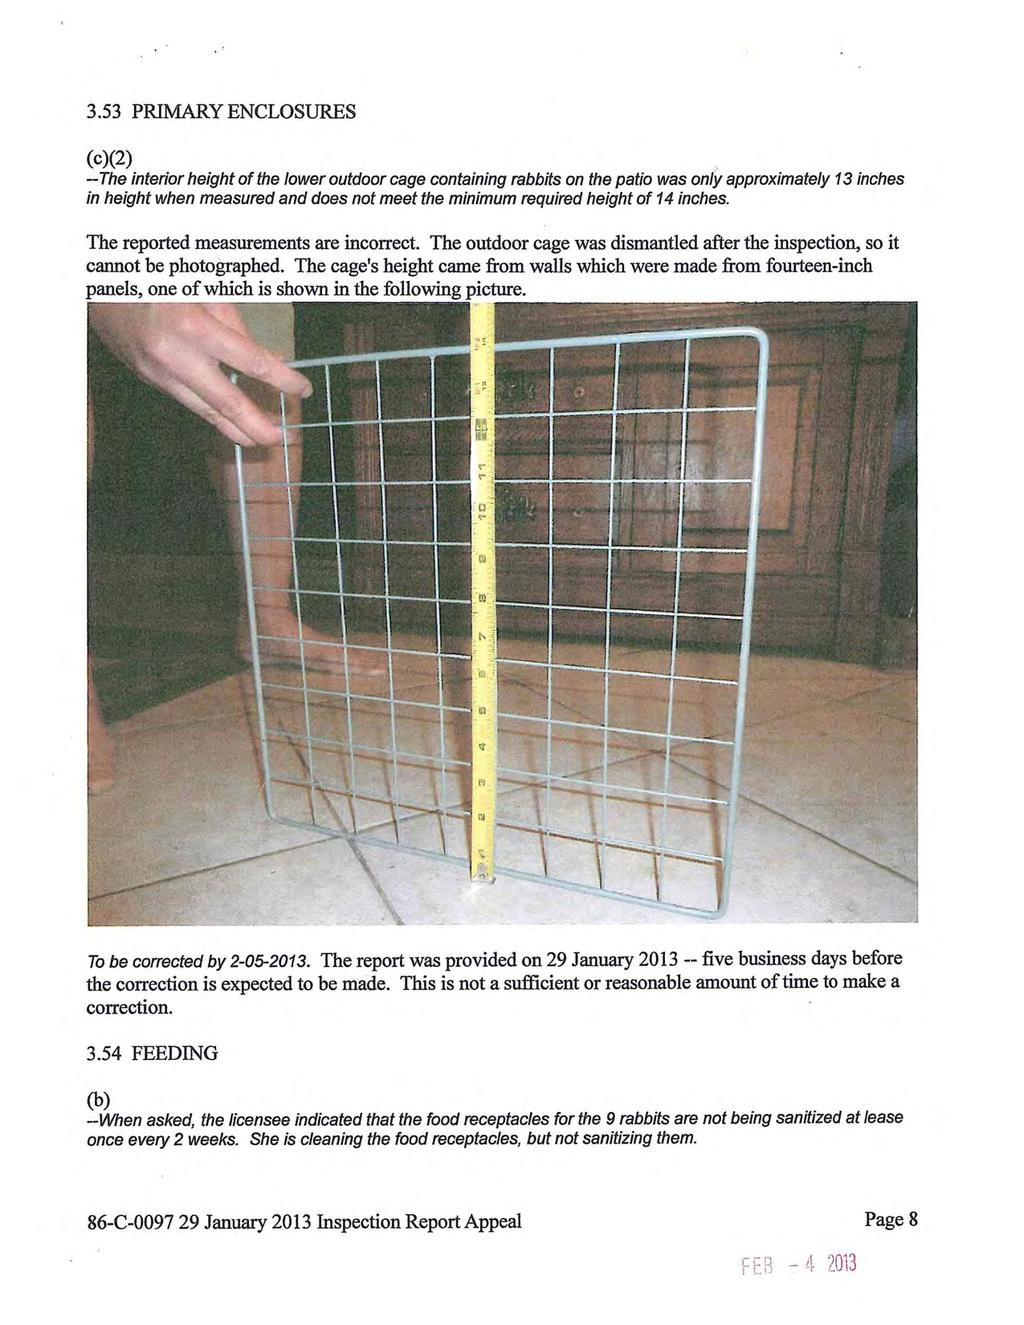 3.53 PRIMARY ENCLOSURES (c)(2) - The interior height of the lower outdoor cage containing rabbits on the patio was only approximately 13 inches in height when measured and does not meet the minimum